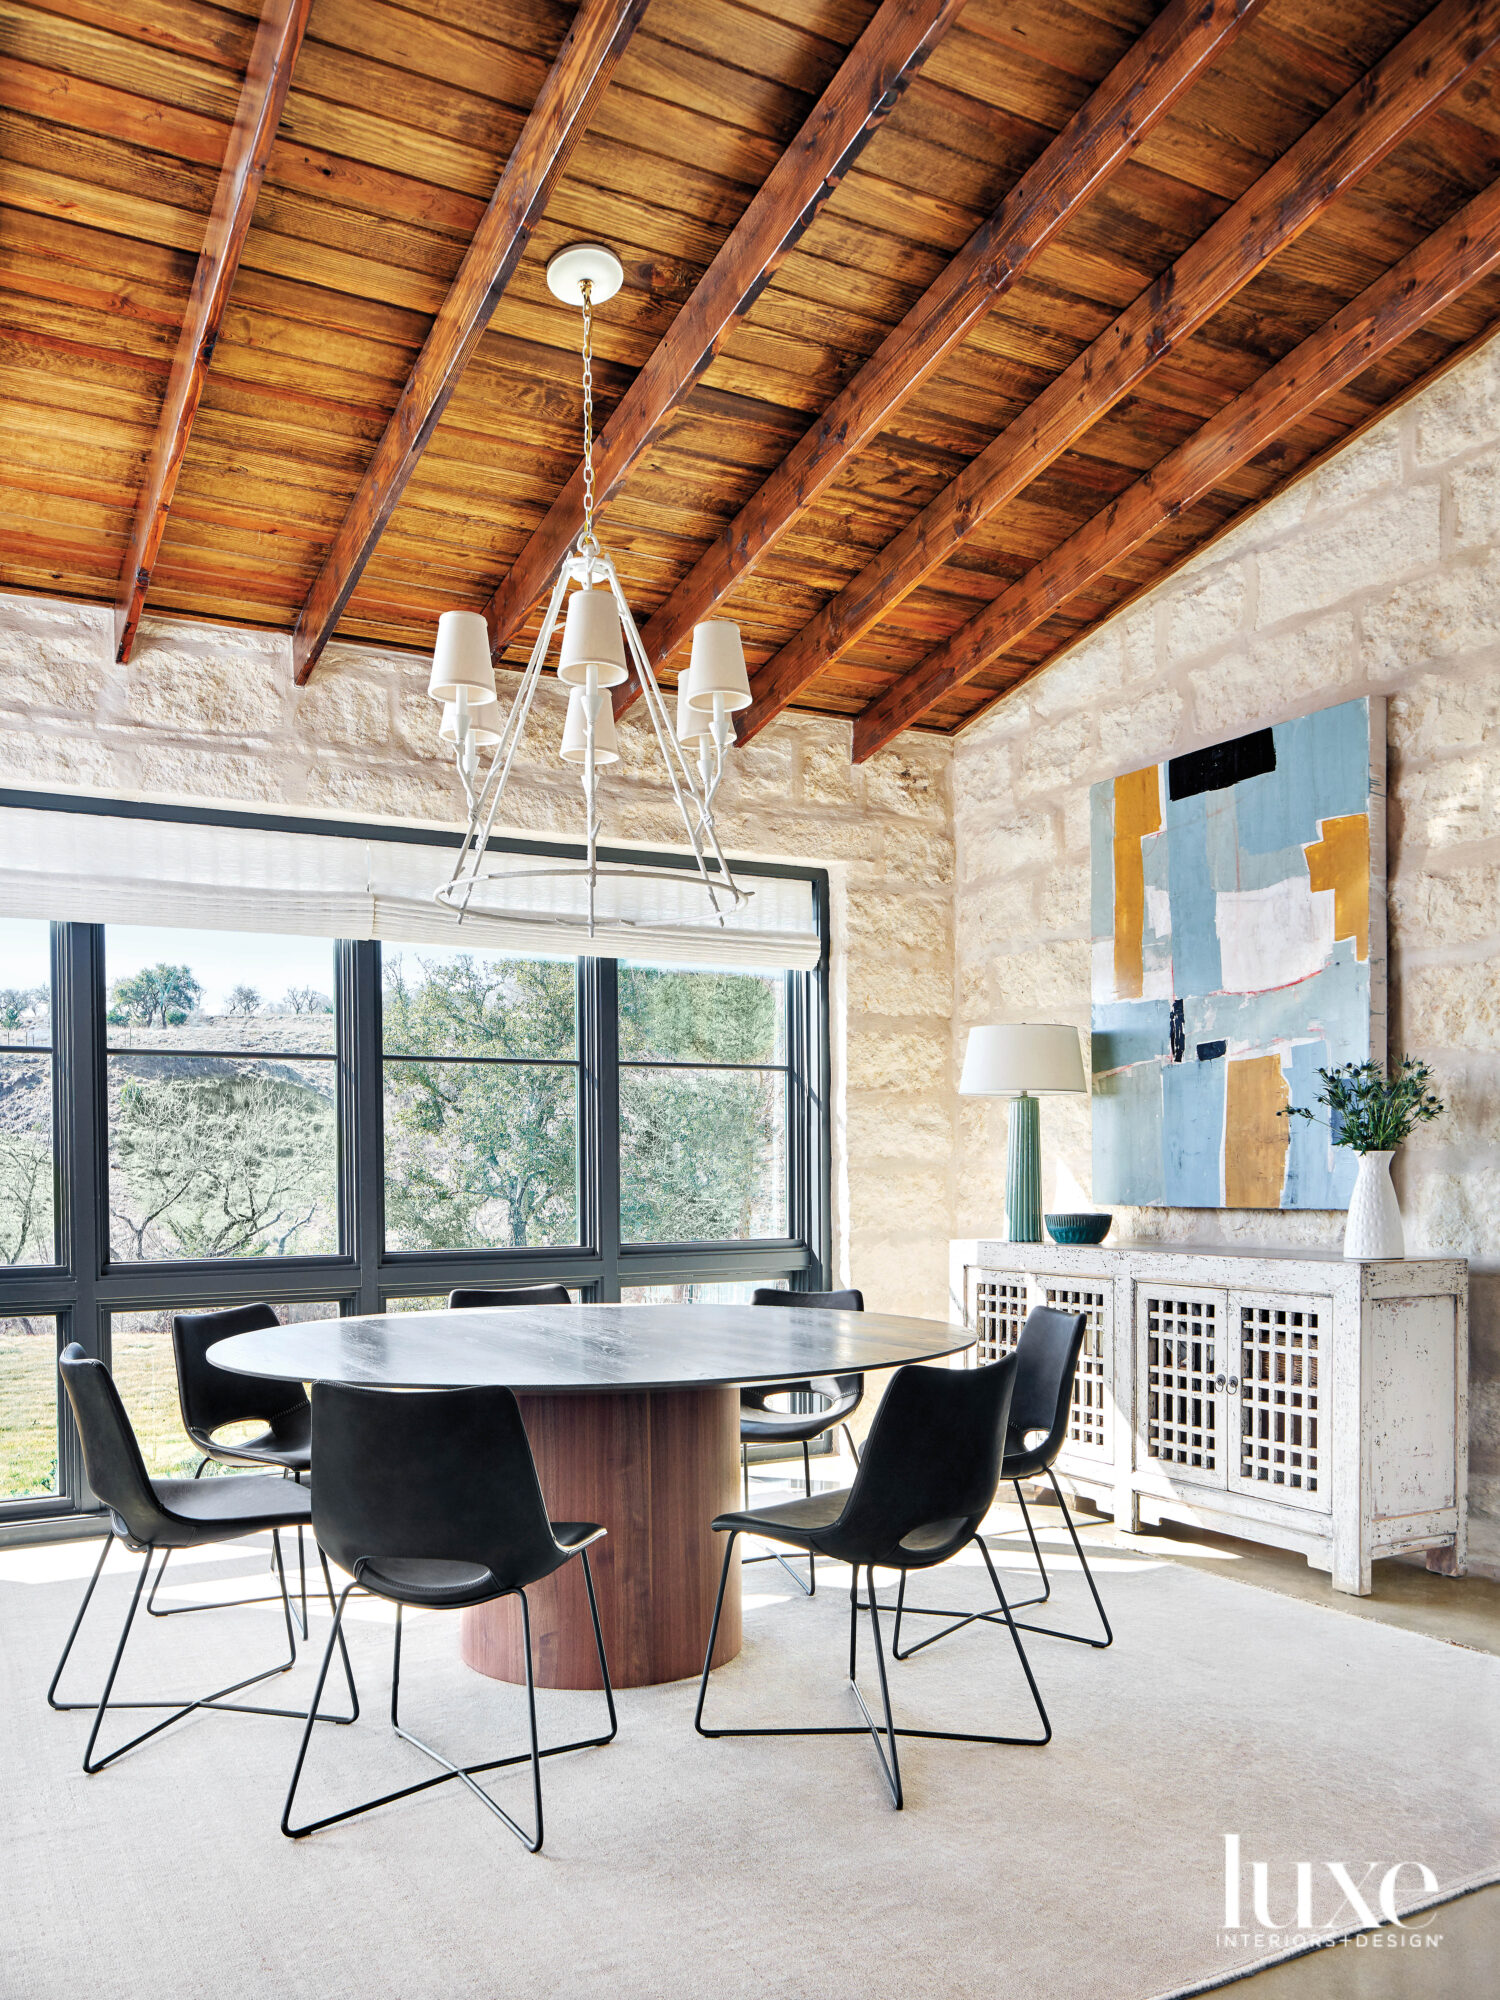 Dining room with expansive windows.